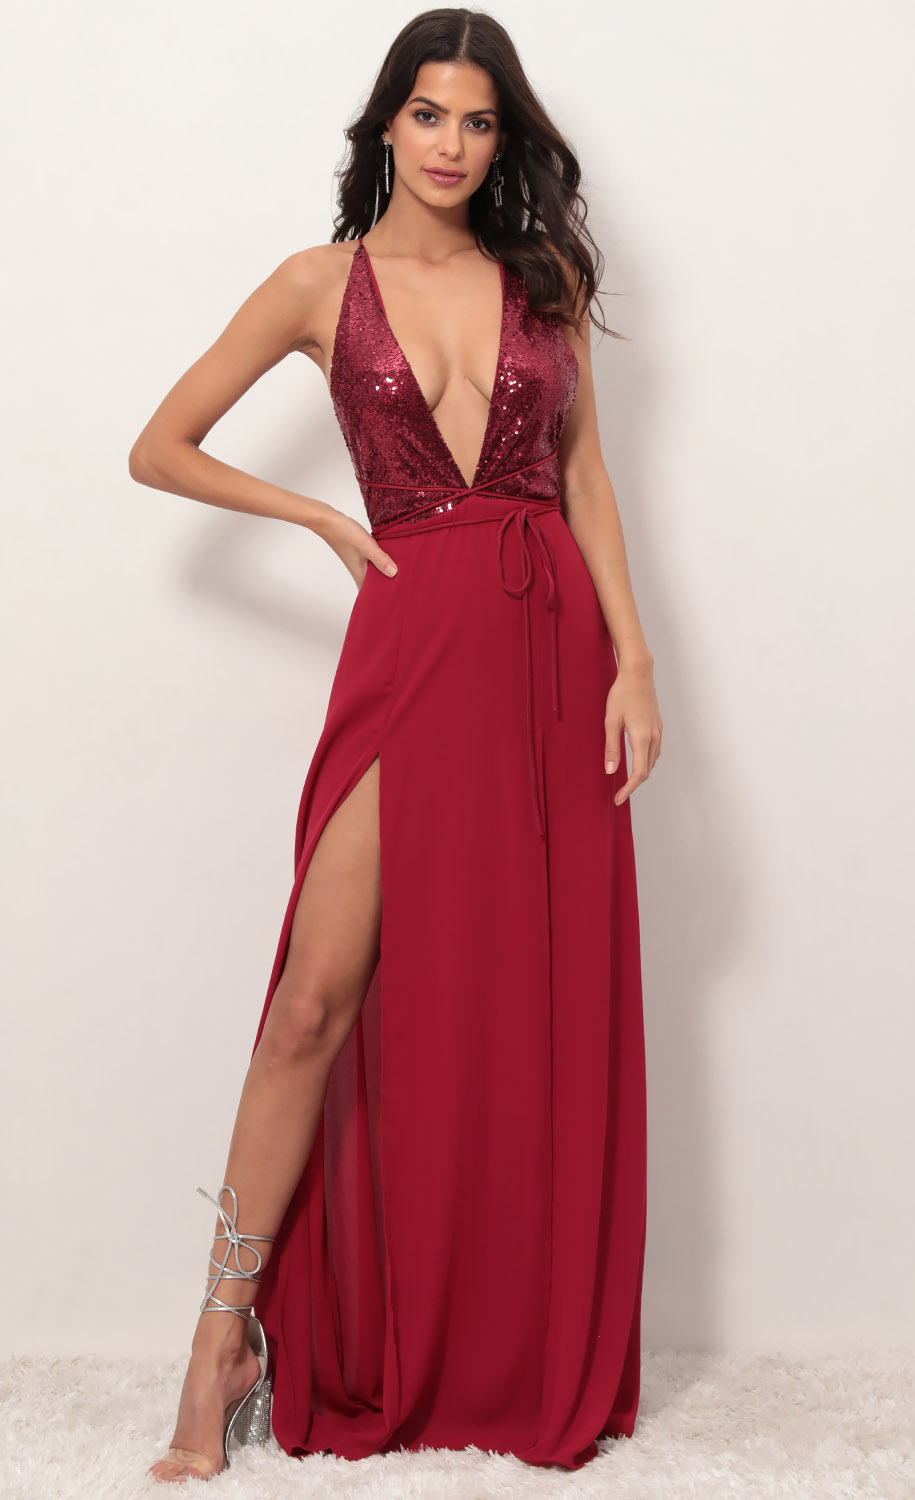 Allure Sequin Maxi Dress in Merlot